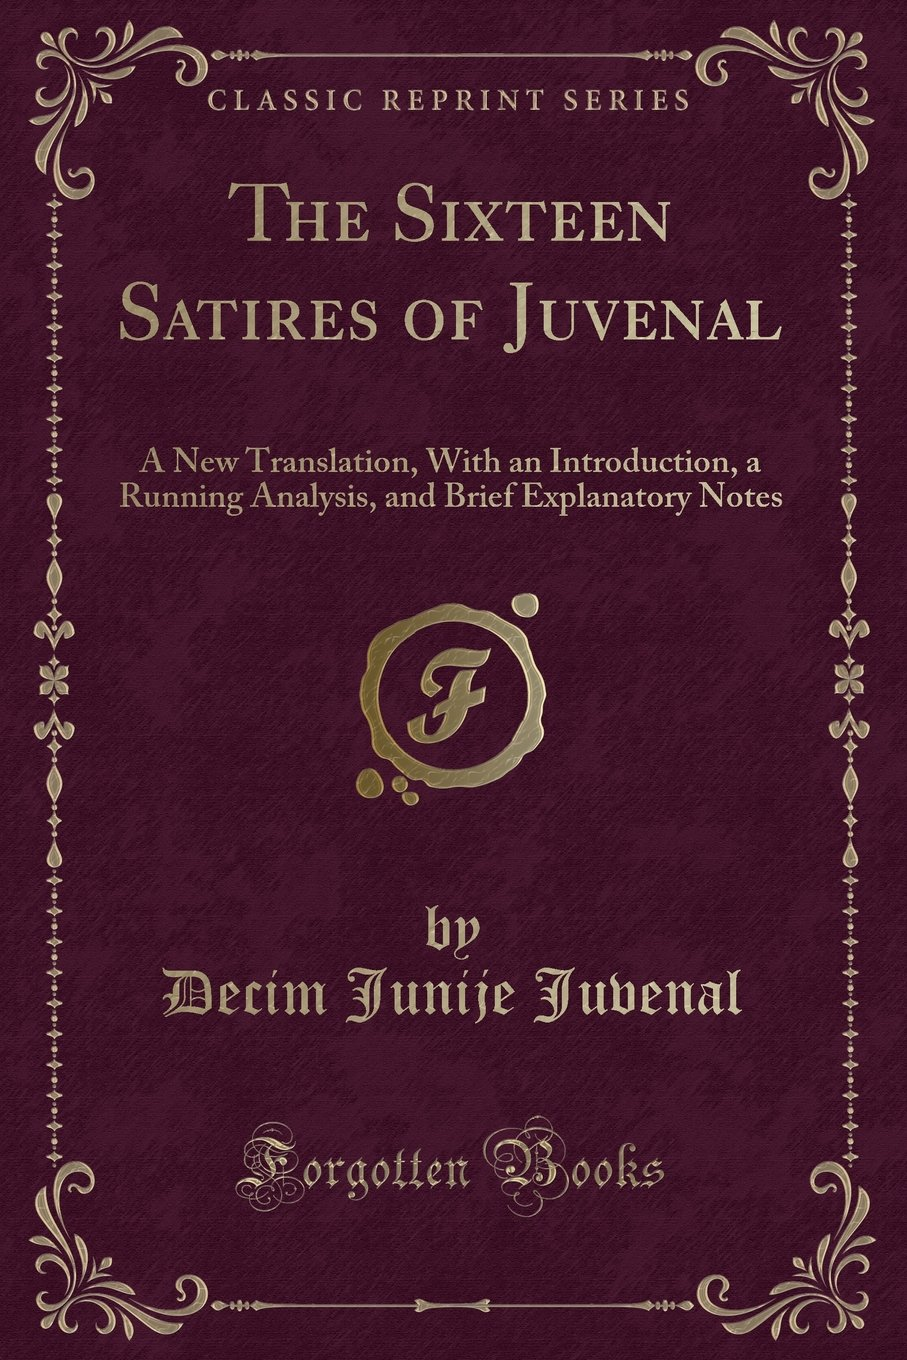 The Sixteen Satires of Juvenal: A New Translation, With an Introduction, a Running Analysis, and Brief Explanatory Notes (Classic Reprint) PDF